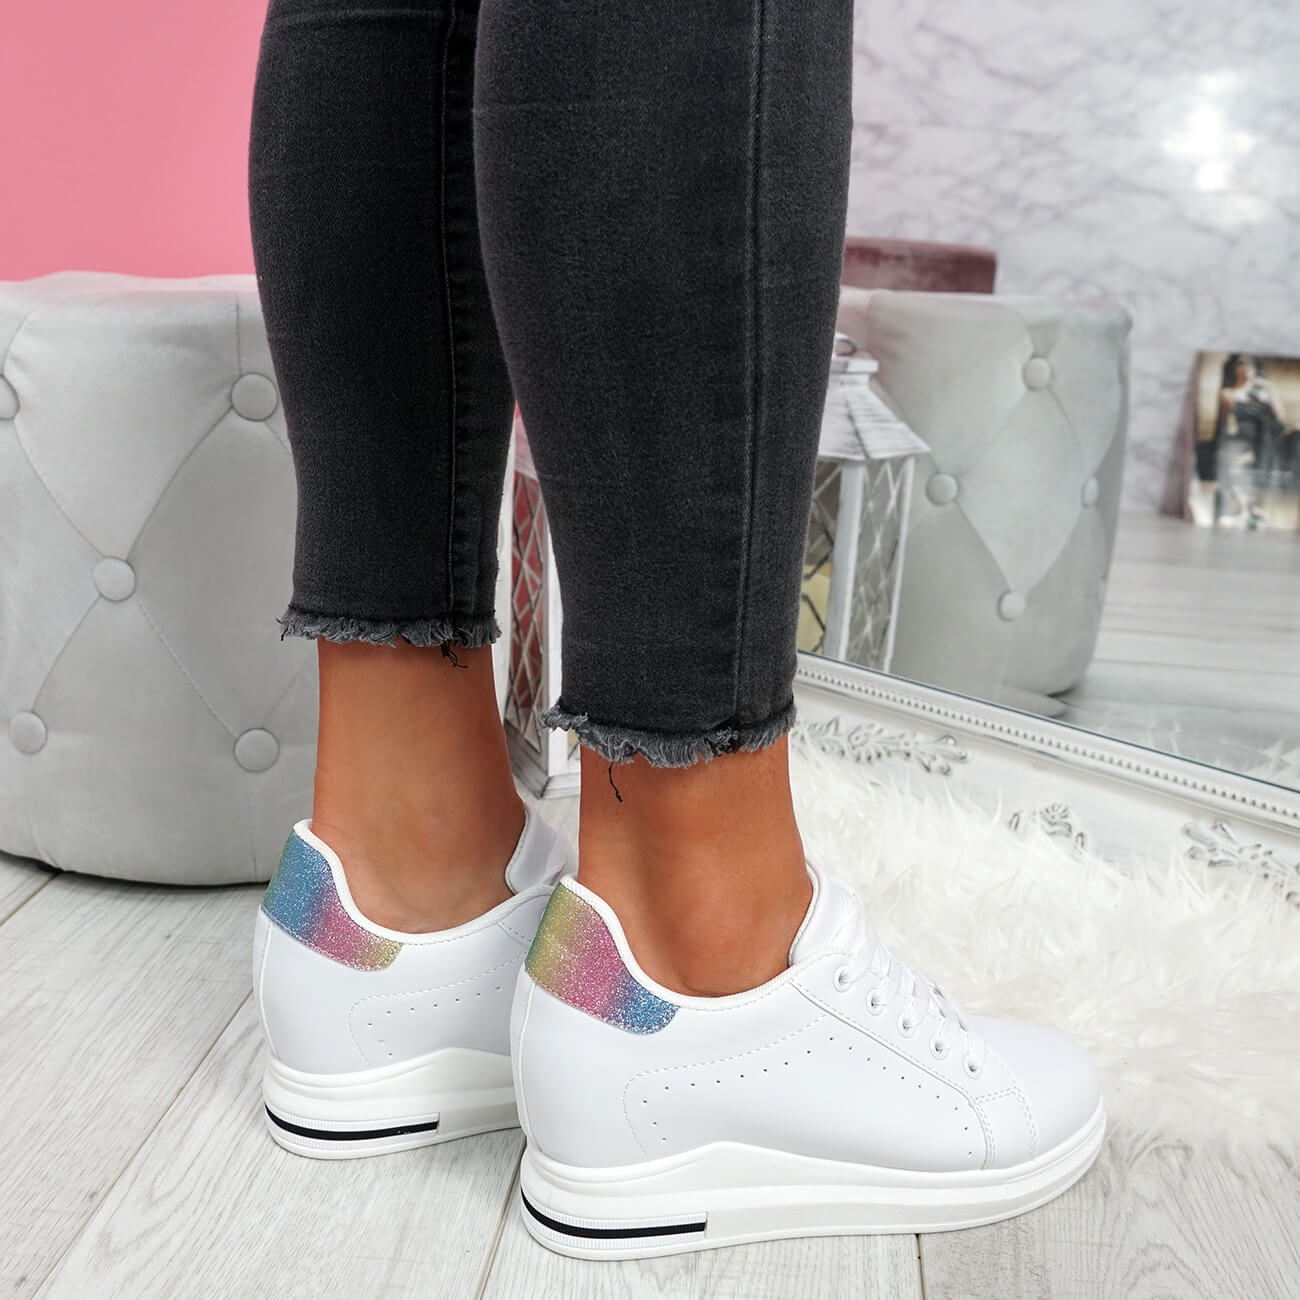 WOMENS-LADIES-LACE-UP-WEDGE-TRAINERS-HEEL-SNEAKERS-SHINY-PARTY-WOMEN-SHOES thumbnail 25